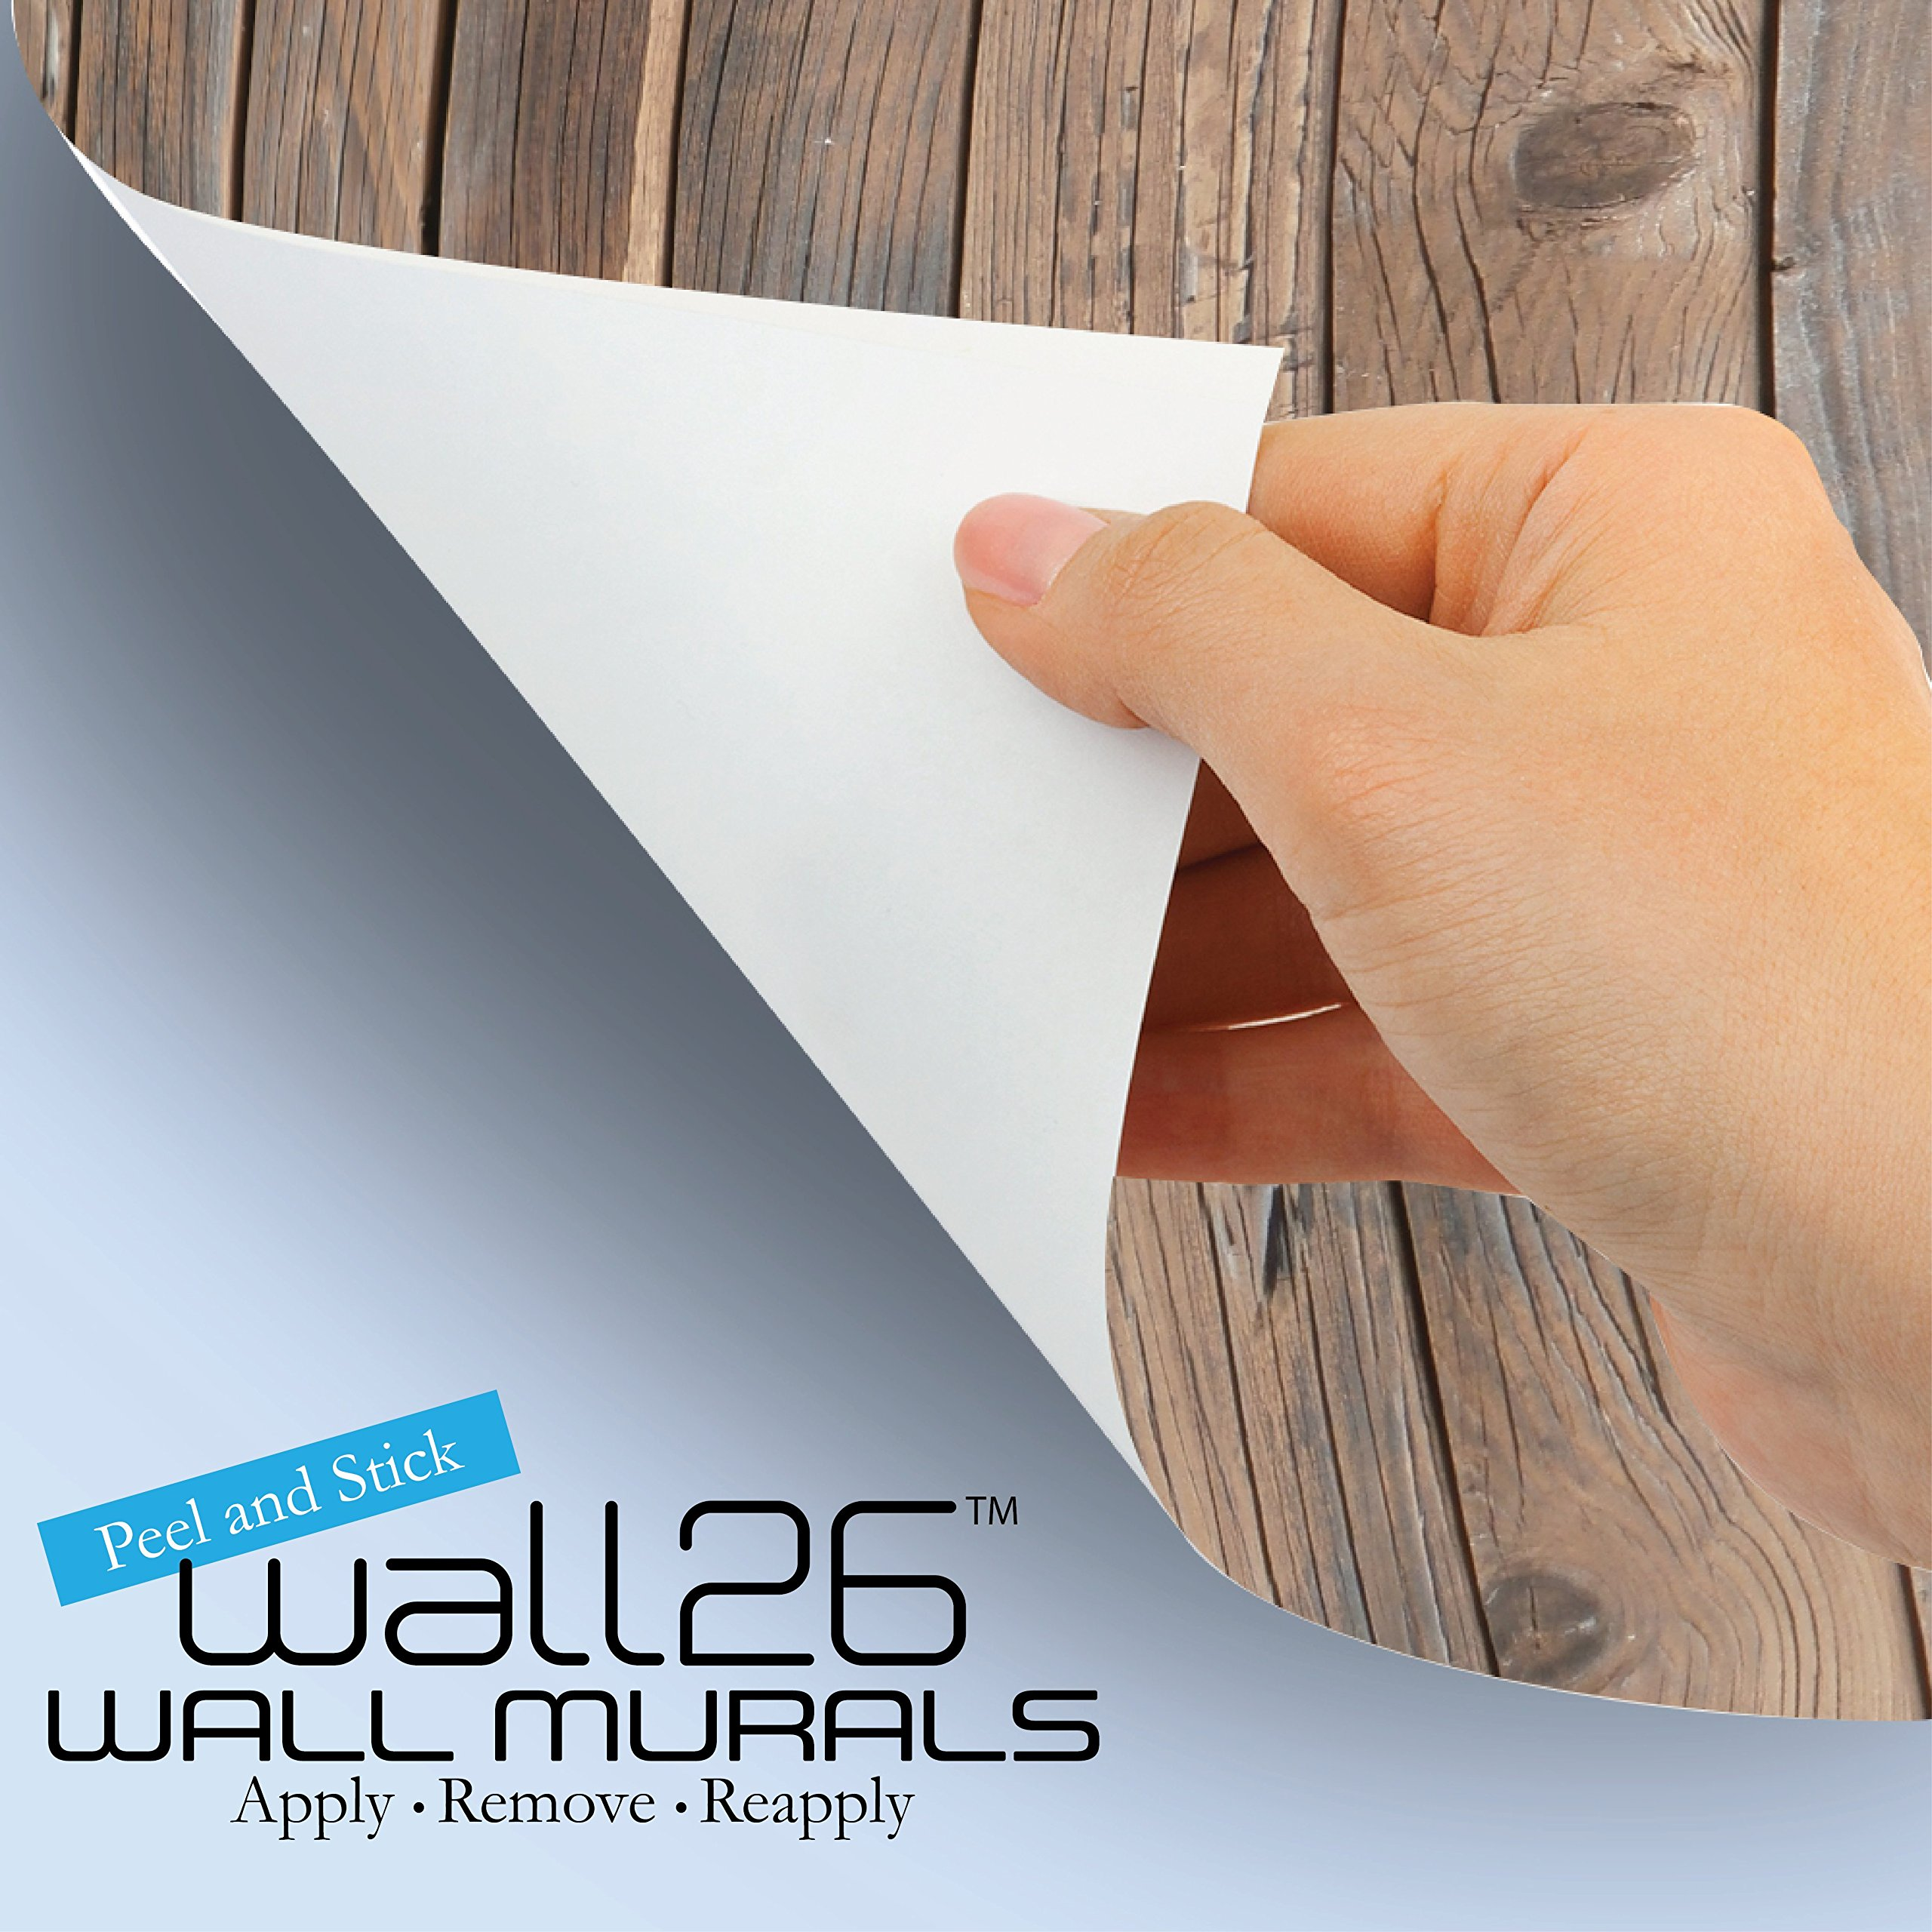 wall26 - Peering into a Vibrantly Colored Space - Wall Mural, Removable Sticker, Home Decor - 100x144 inches by wall26 (Image #4)